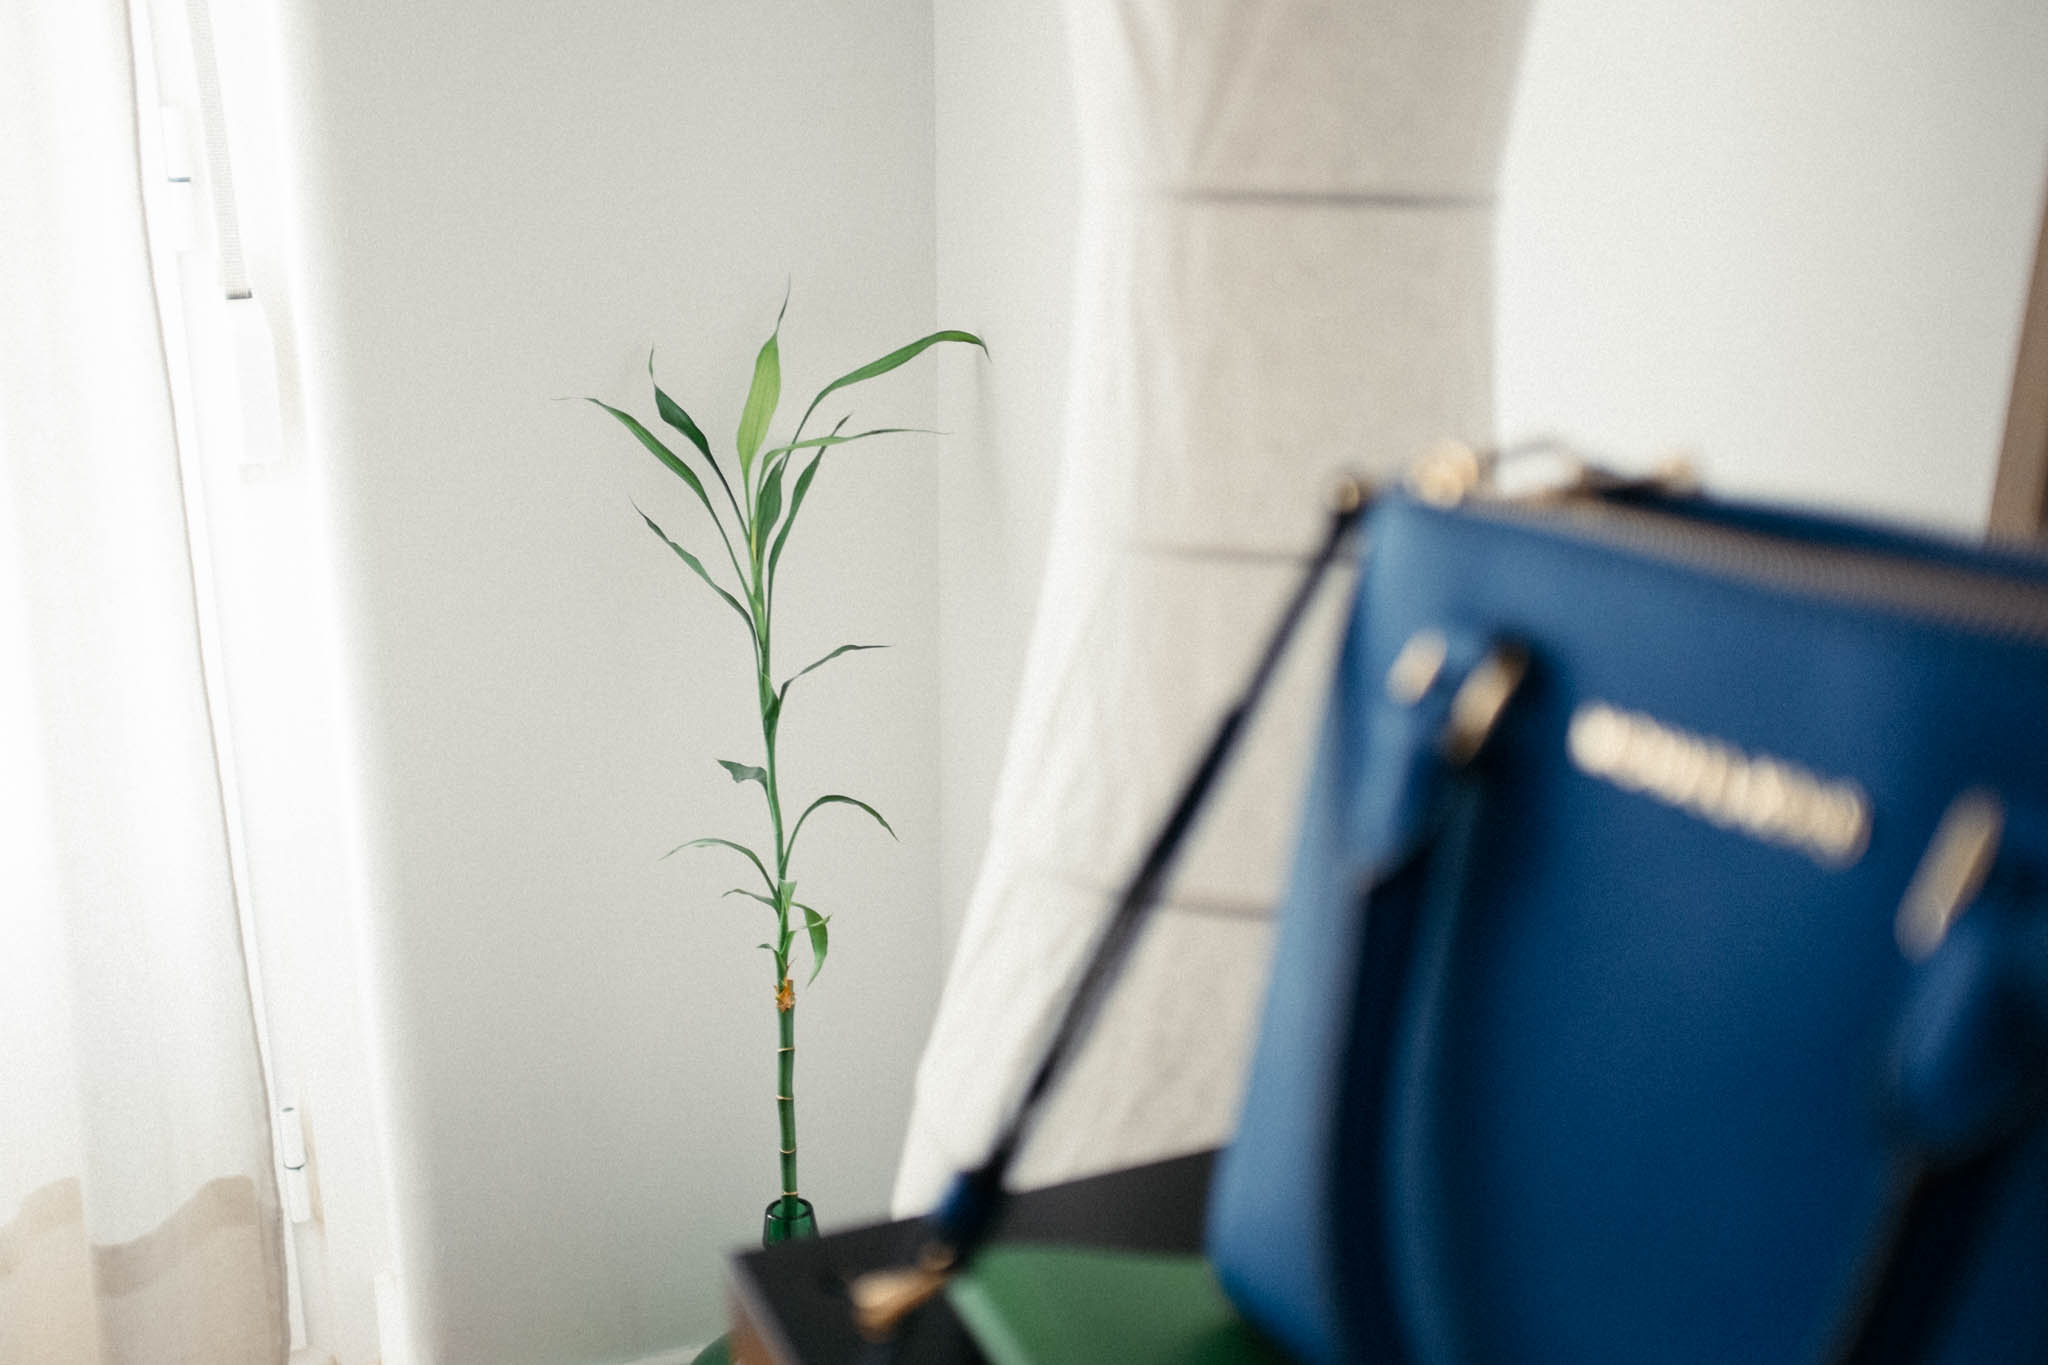 Our bamboo is growing as well.